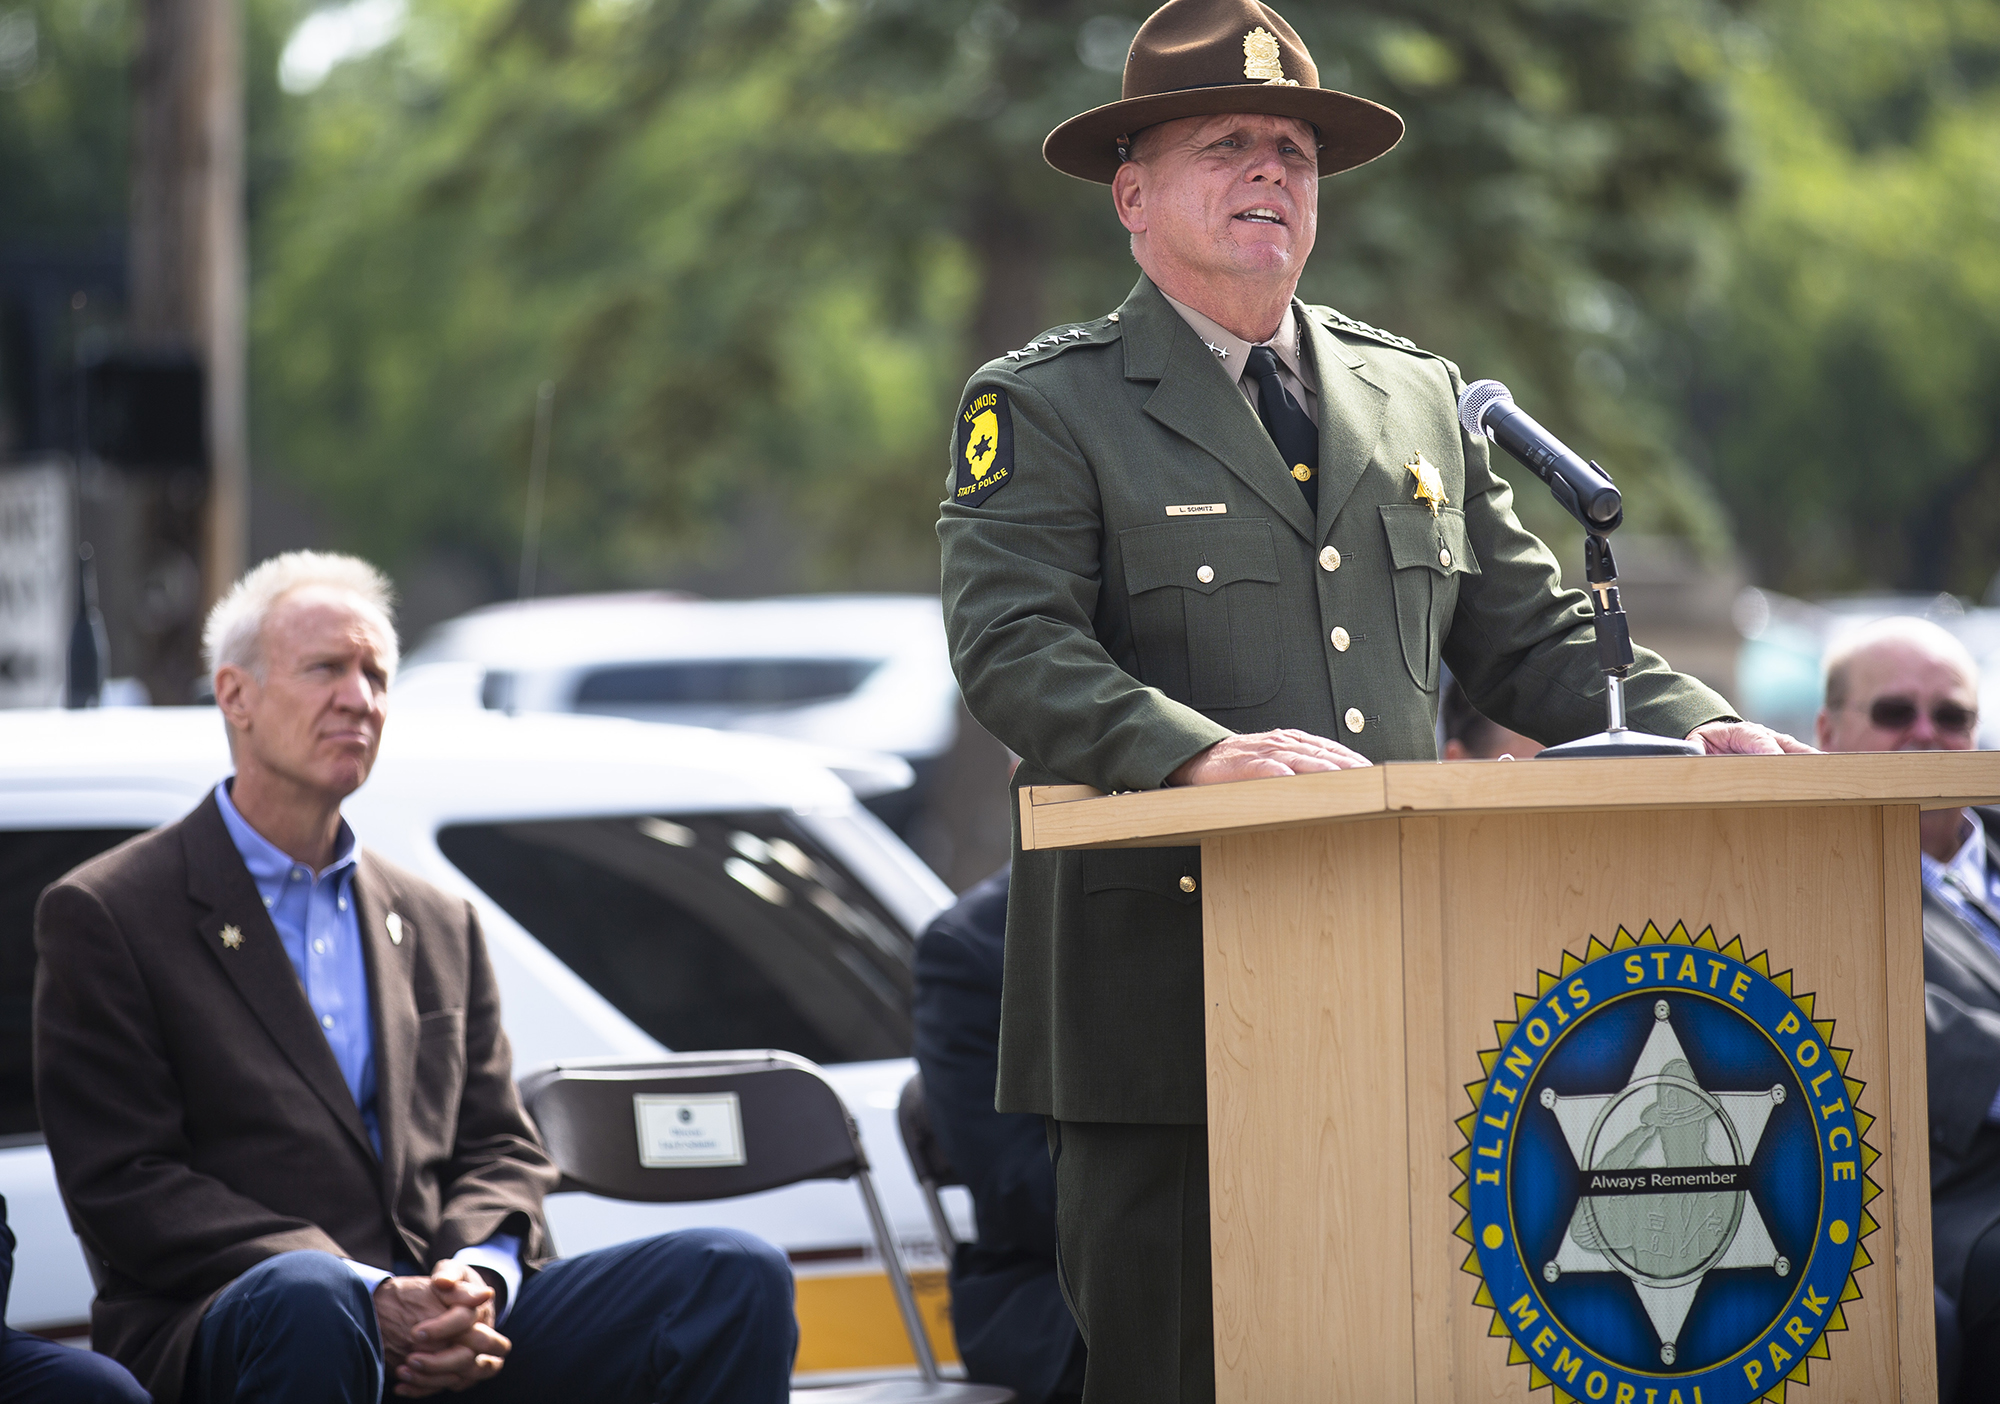 Illinois State Police Director Leo Schmitz speaks at the dedication ceremony for the department's new Memorial Park Tuesday, Oct. 2, 2018 at 615 W. Lawrence in Springfield, Ill. [Rich Saal/The State Journal-Register]